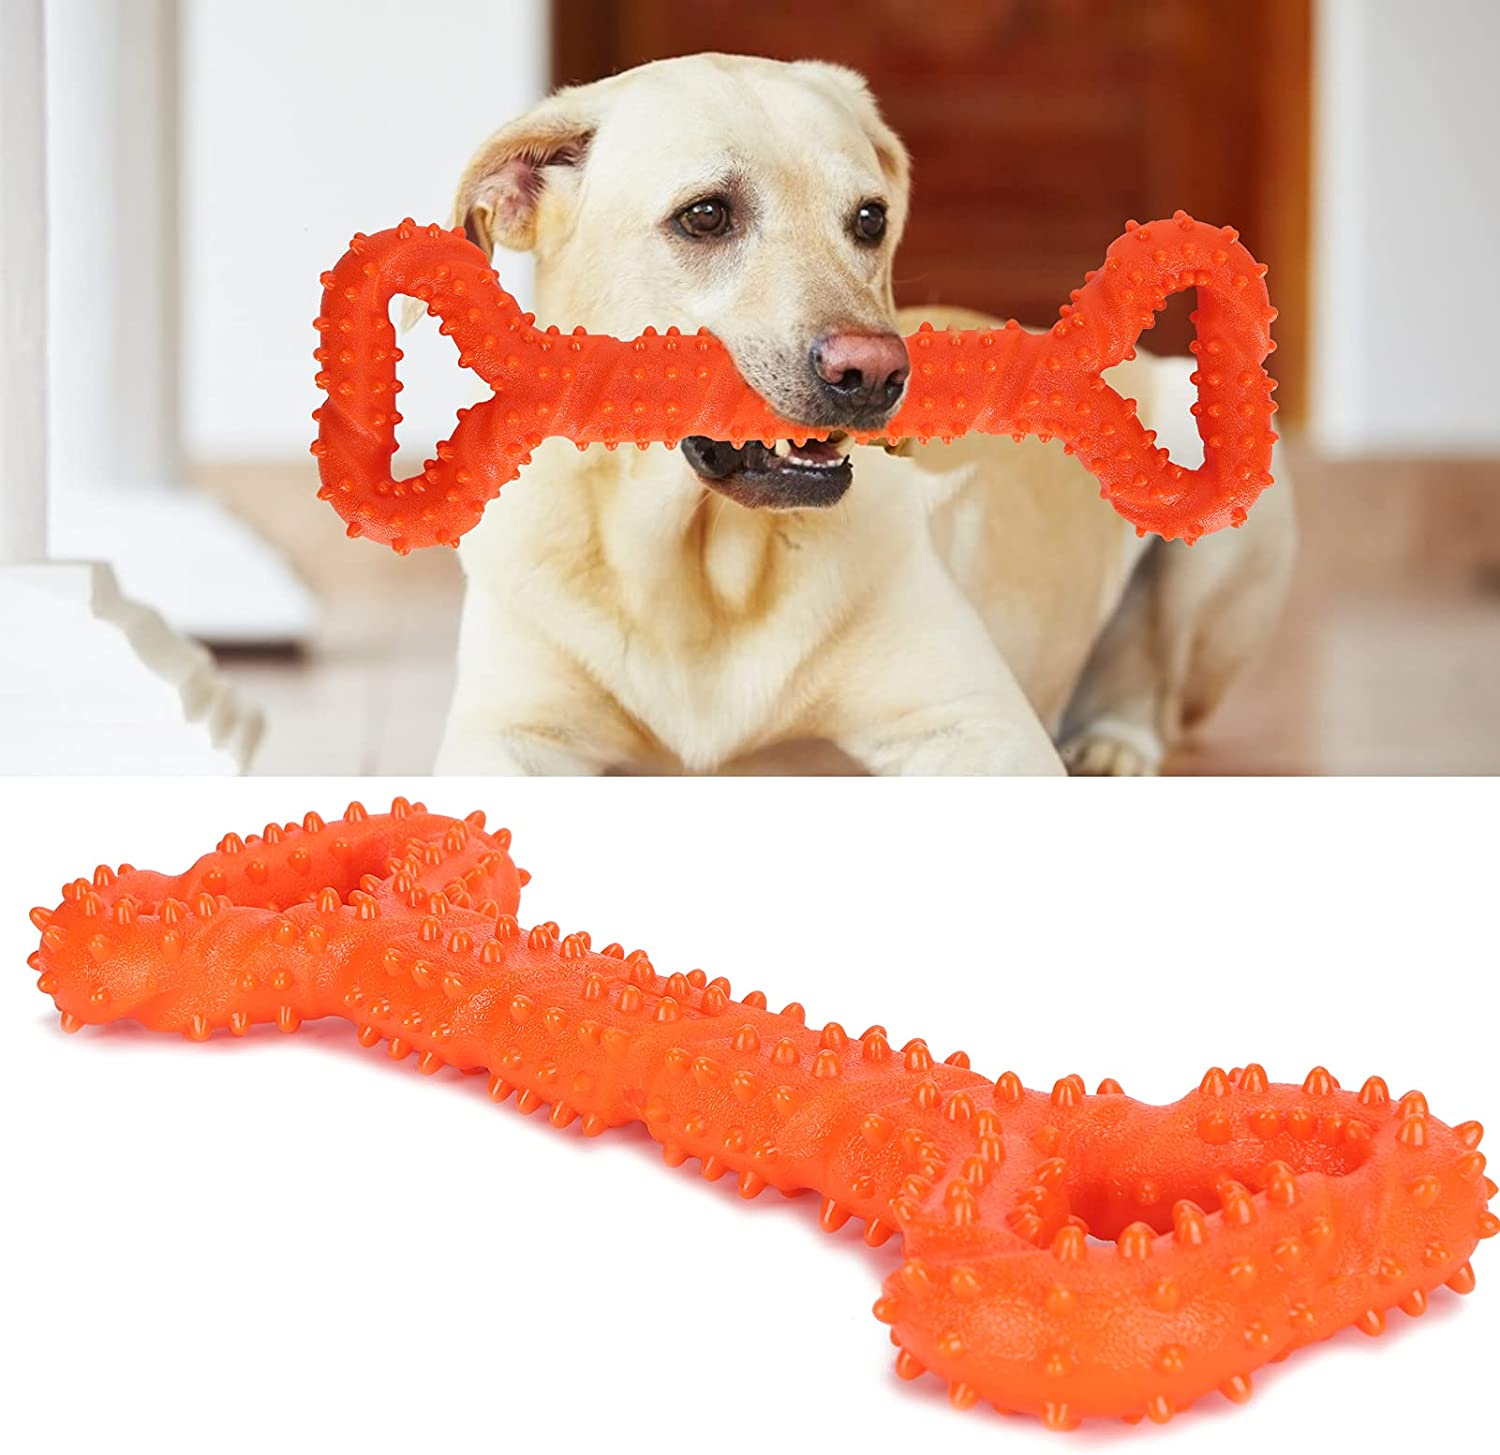 XQAQX Beauty products Pet Teeth Cleaning Toy Dog TPR Stick Chew Outlet SALE